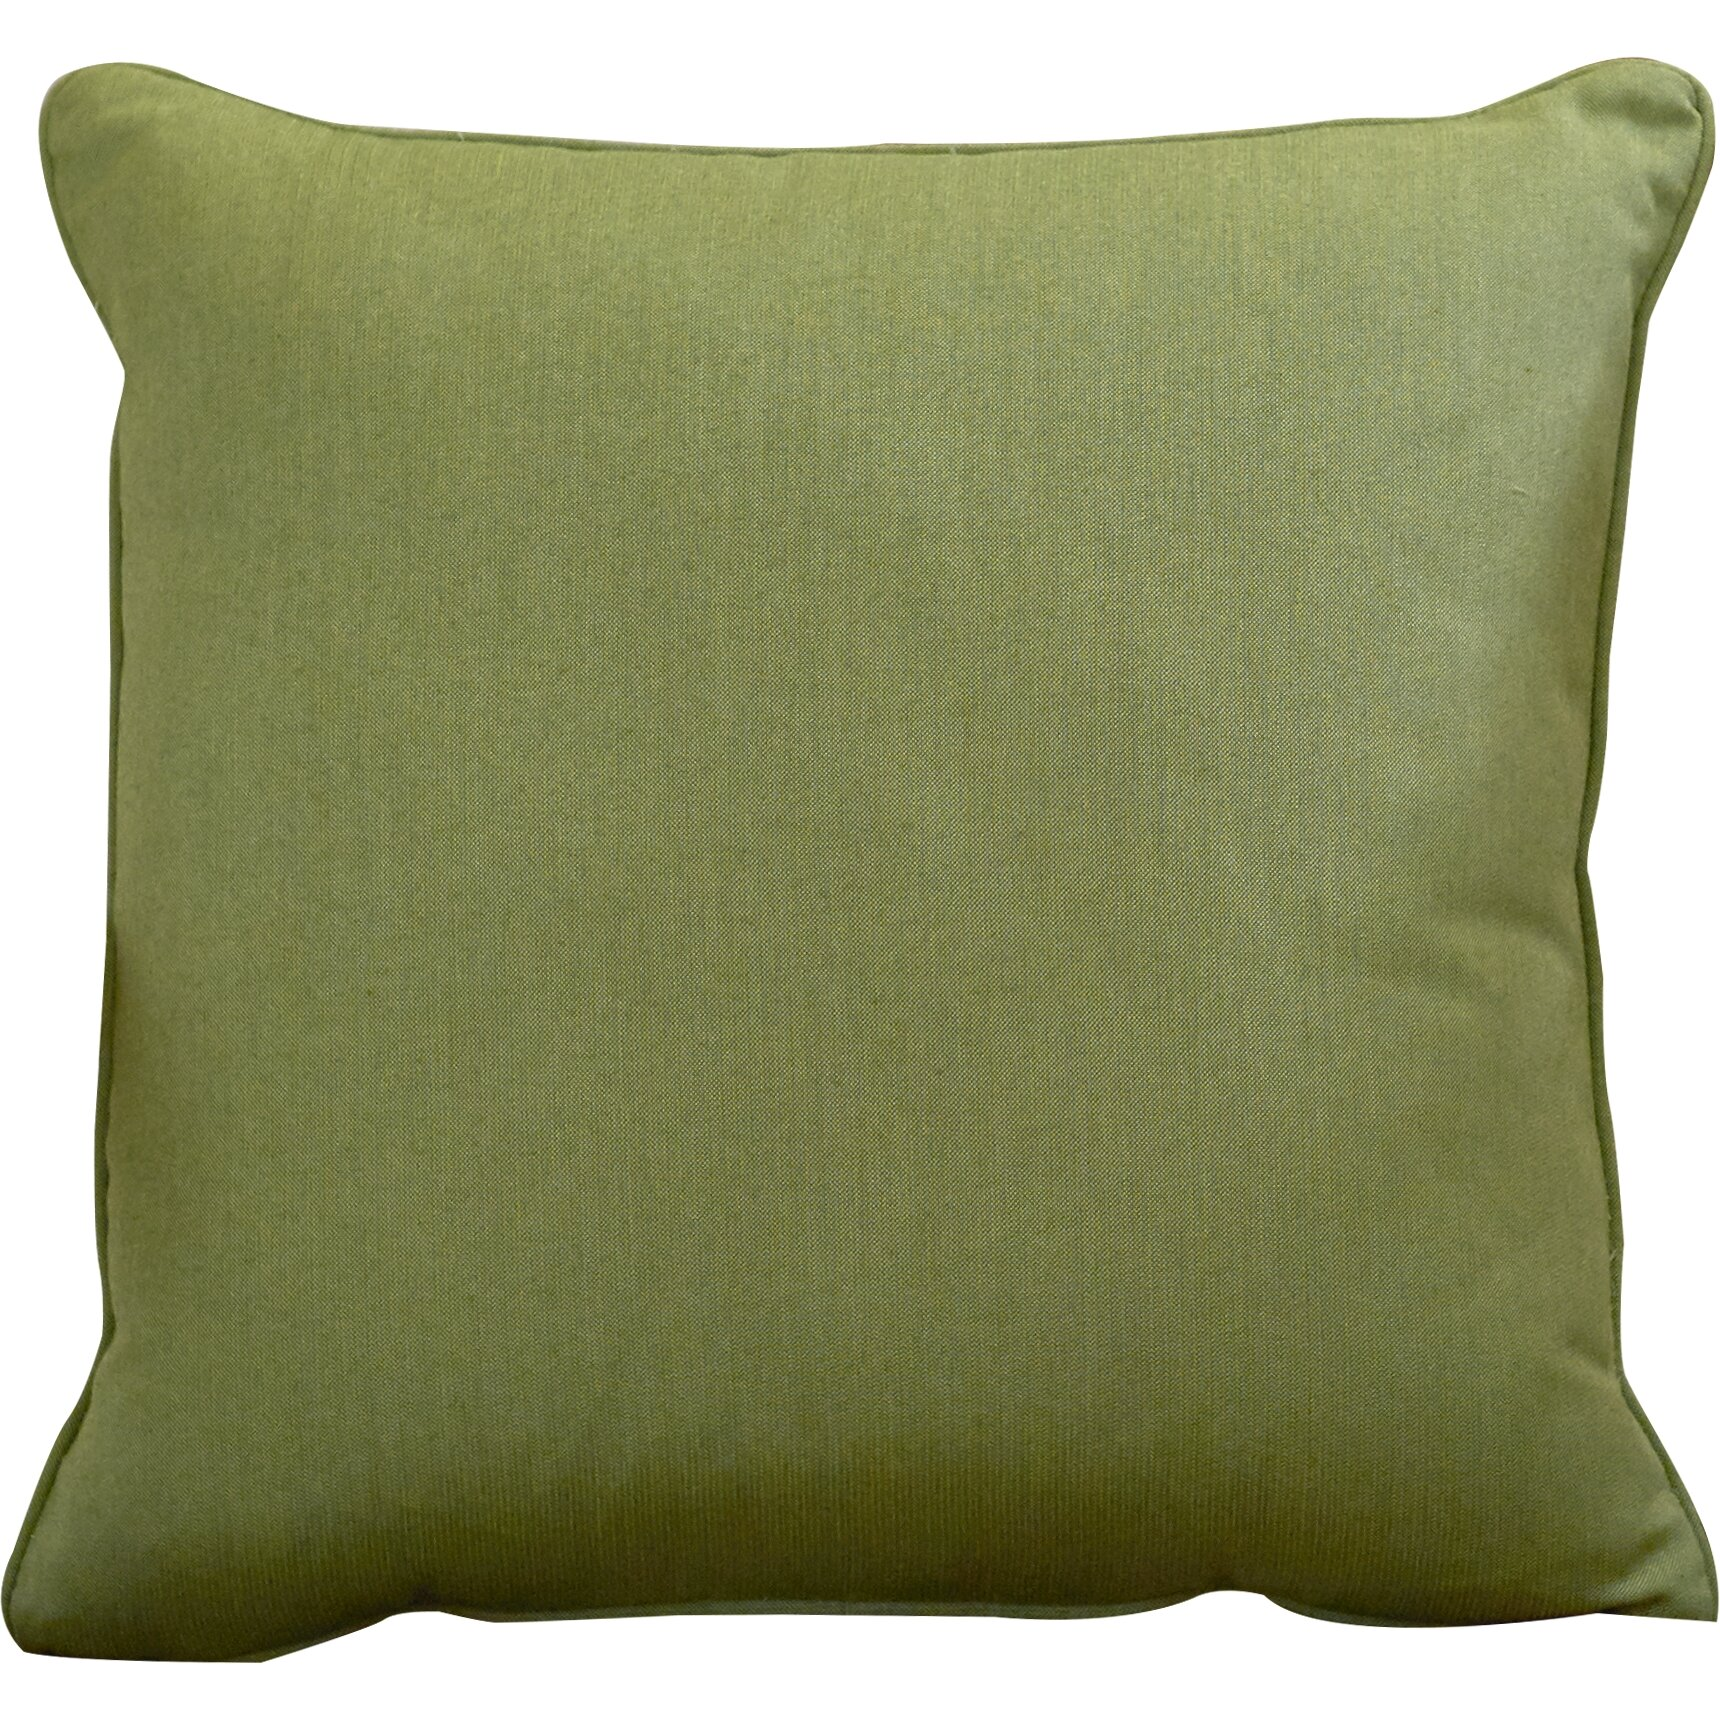 pillows throws decorative pillows wayfair custom outdoor cushions